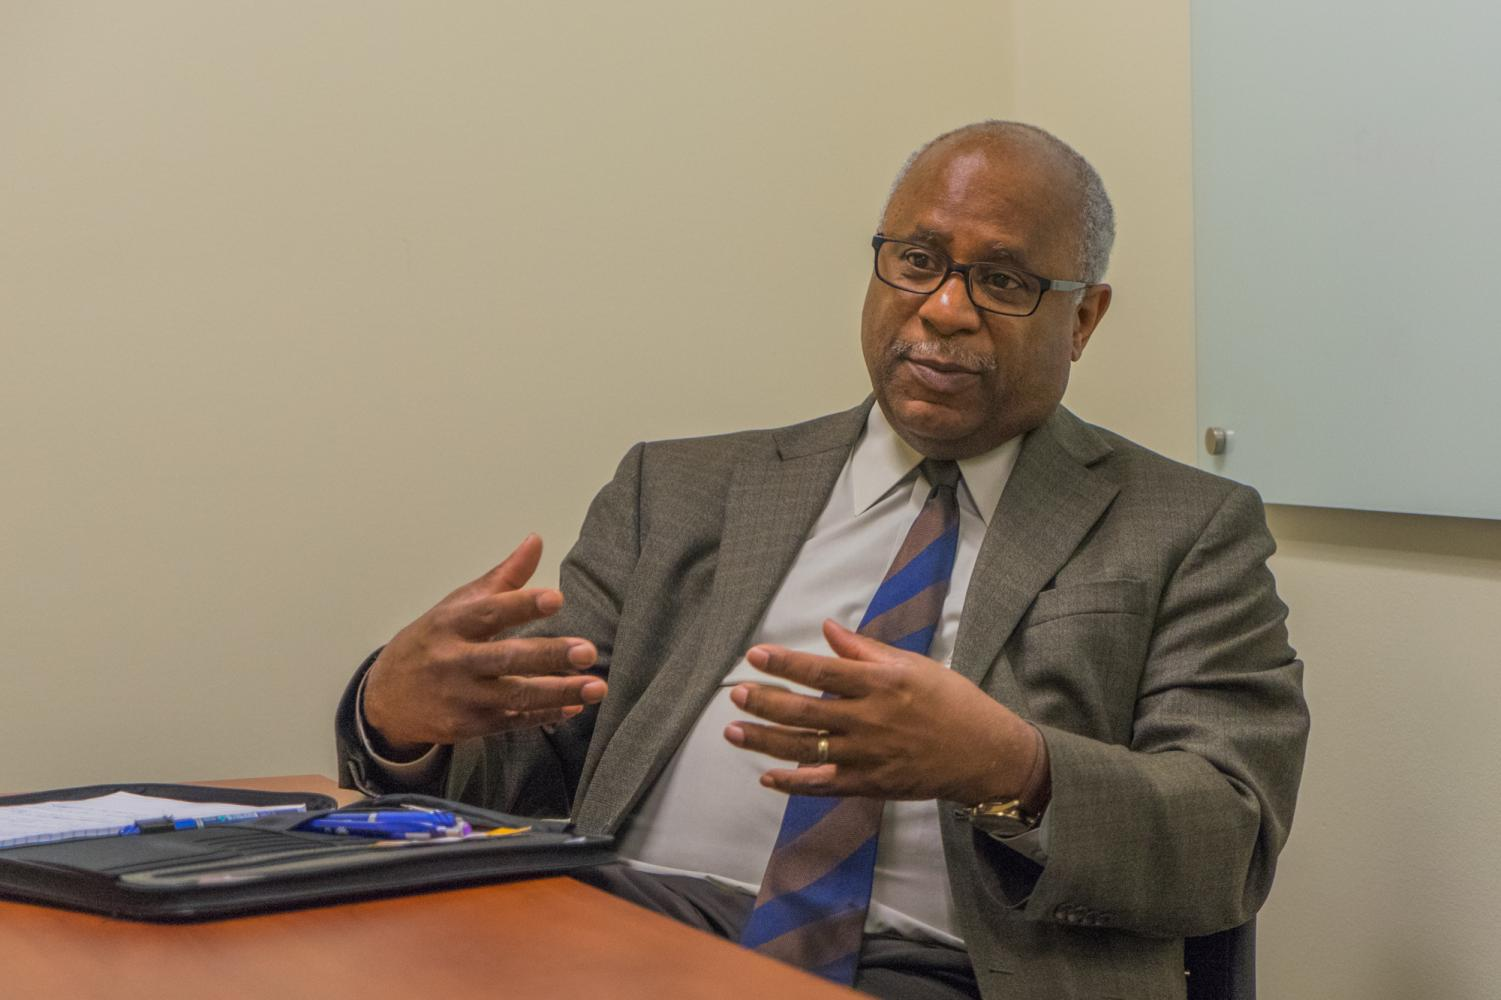 William Welburn discusses the search process for a new Title IX coordinator.